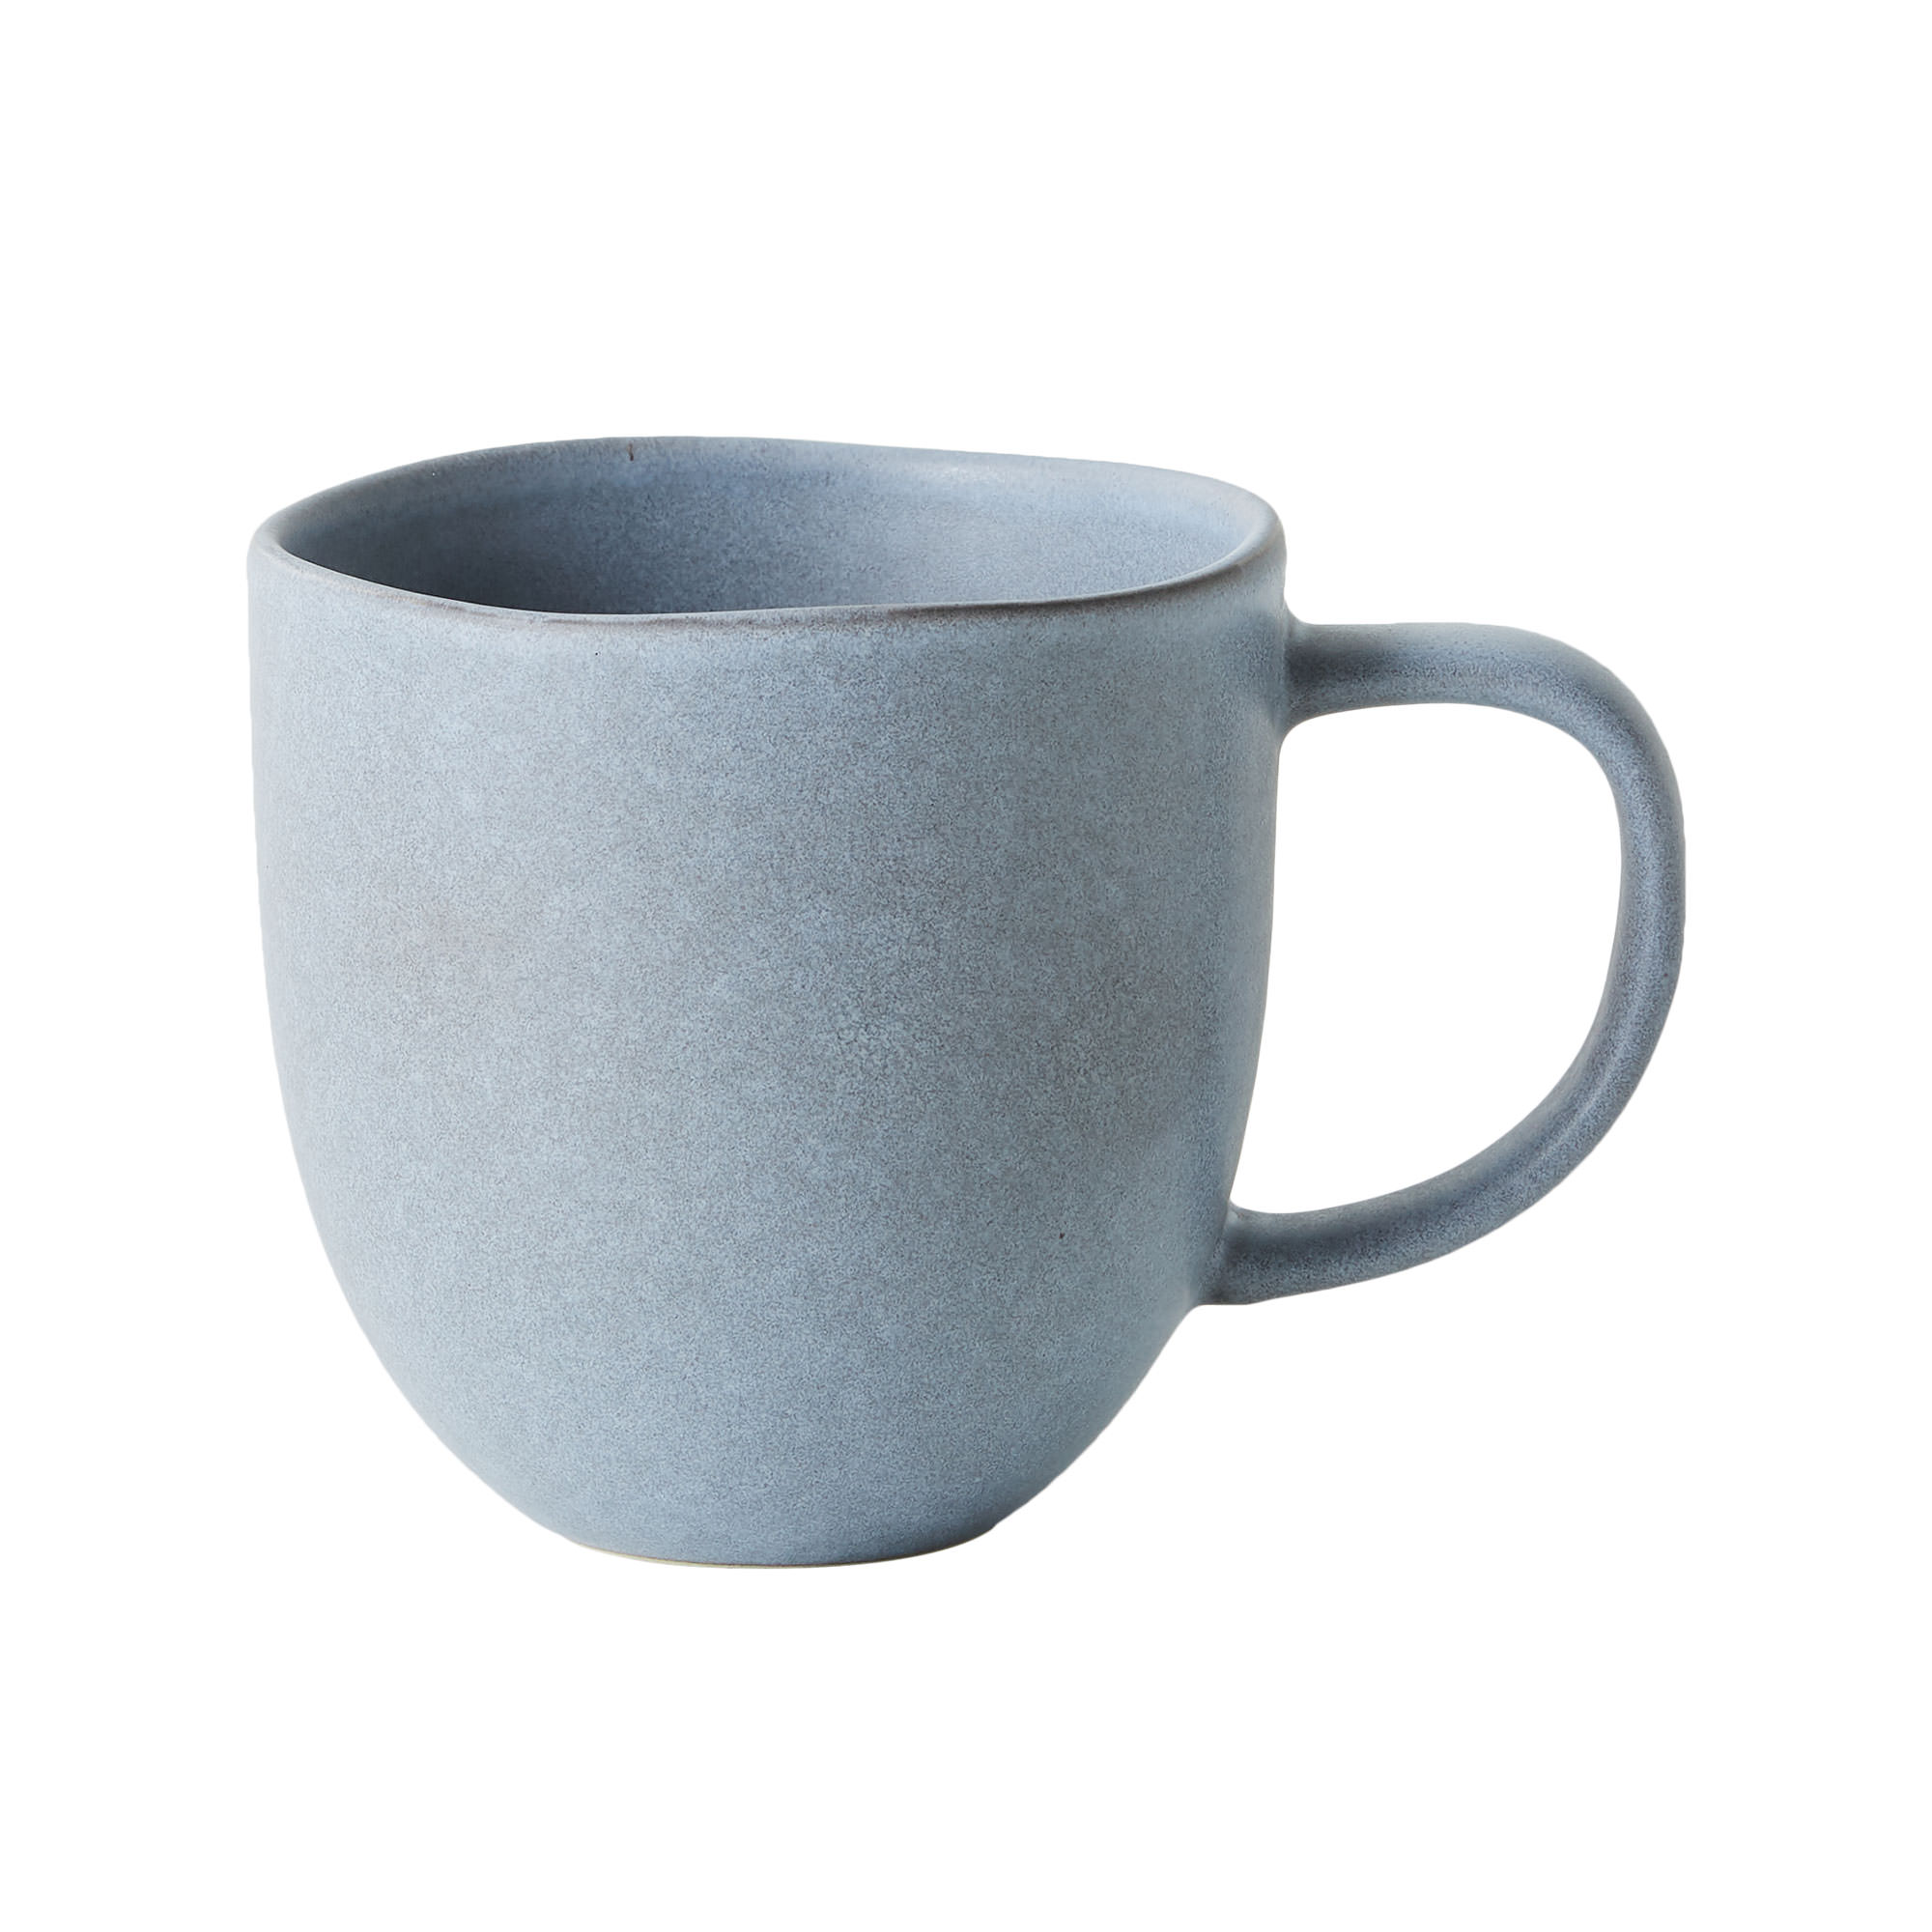 Salisbury & Co Capri Mug 400ml Light Blue